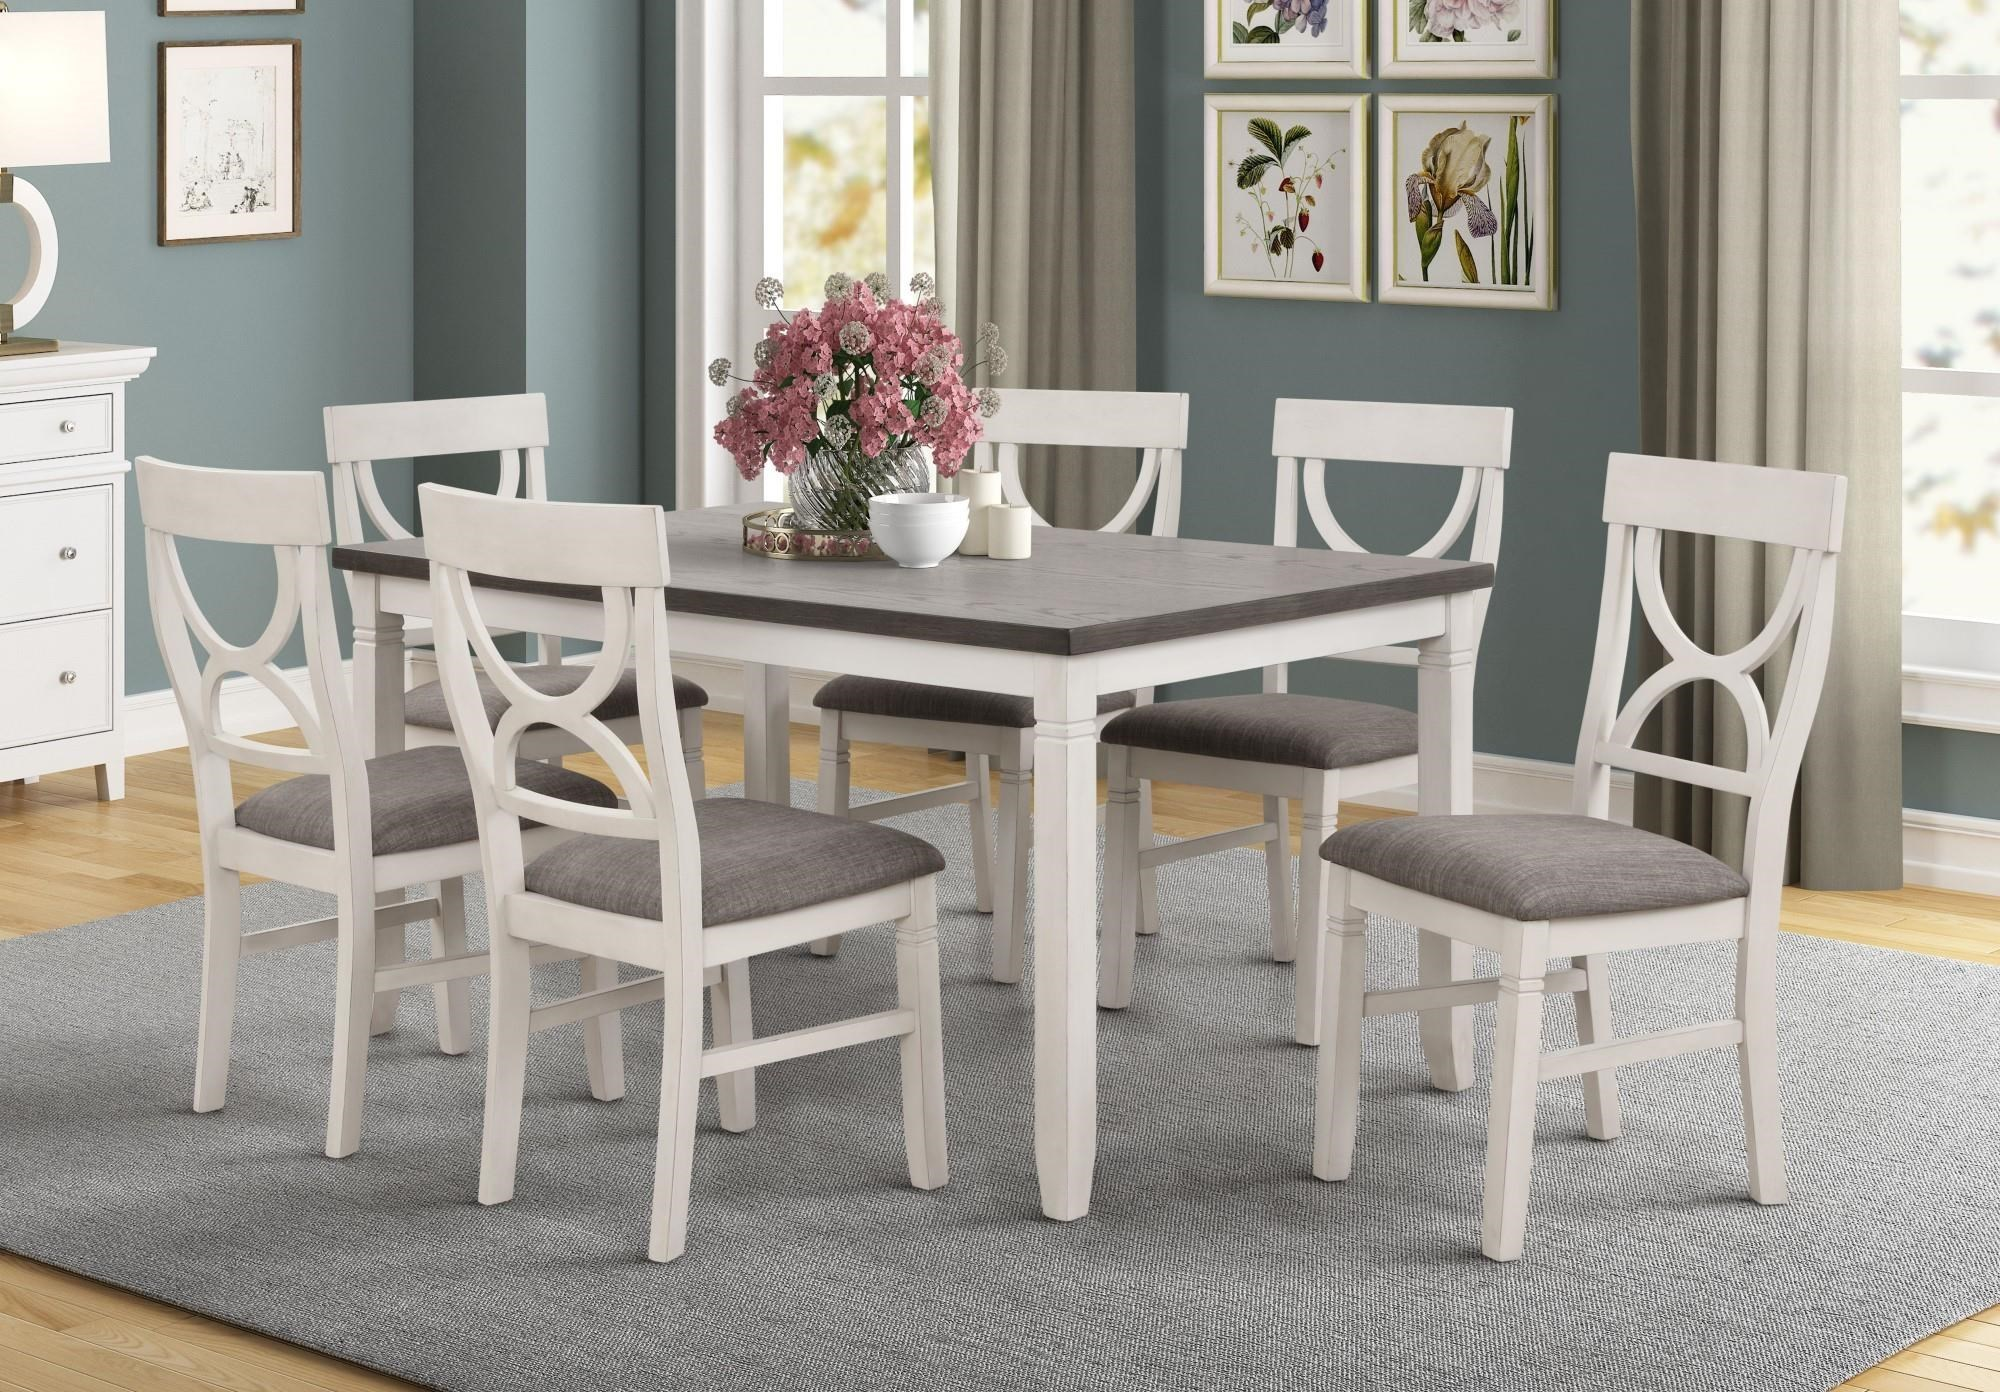 Picture of: Lifestyle Laura Dining Table With 6 Chairs Royal Furniture Casual Dining Room Groups